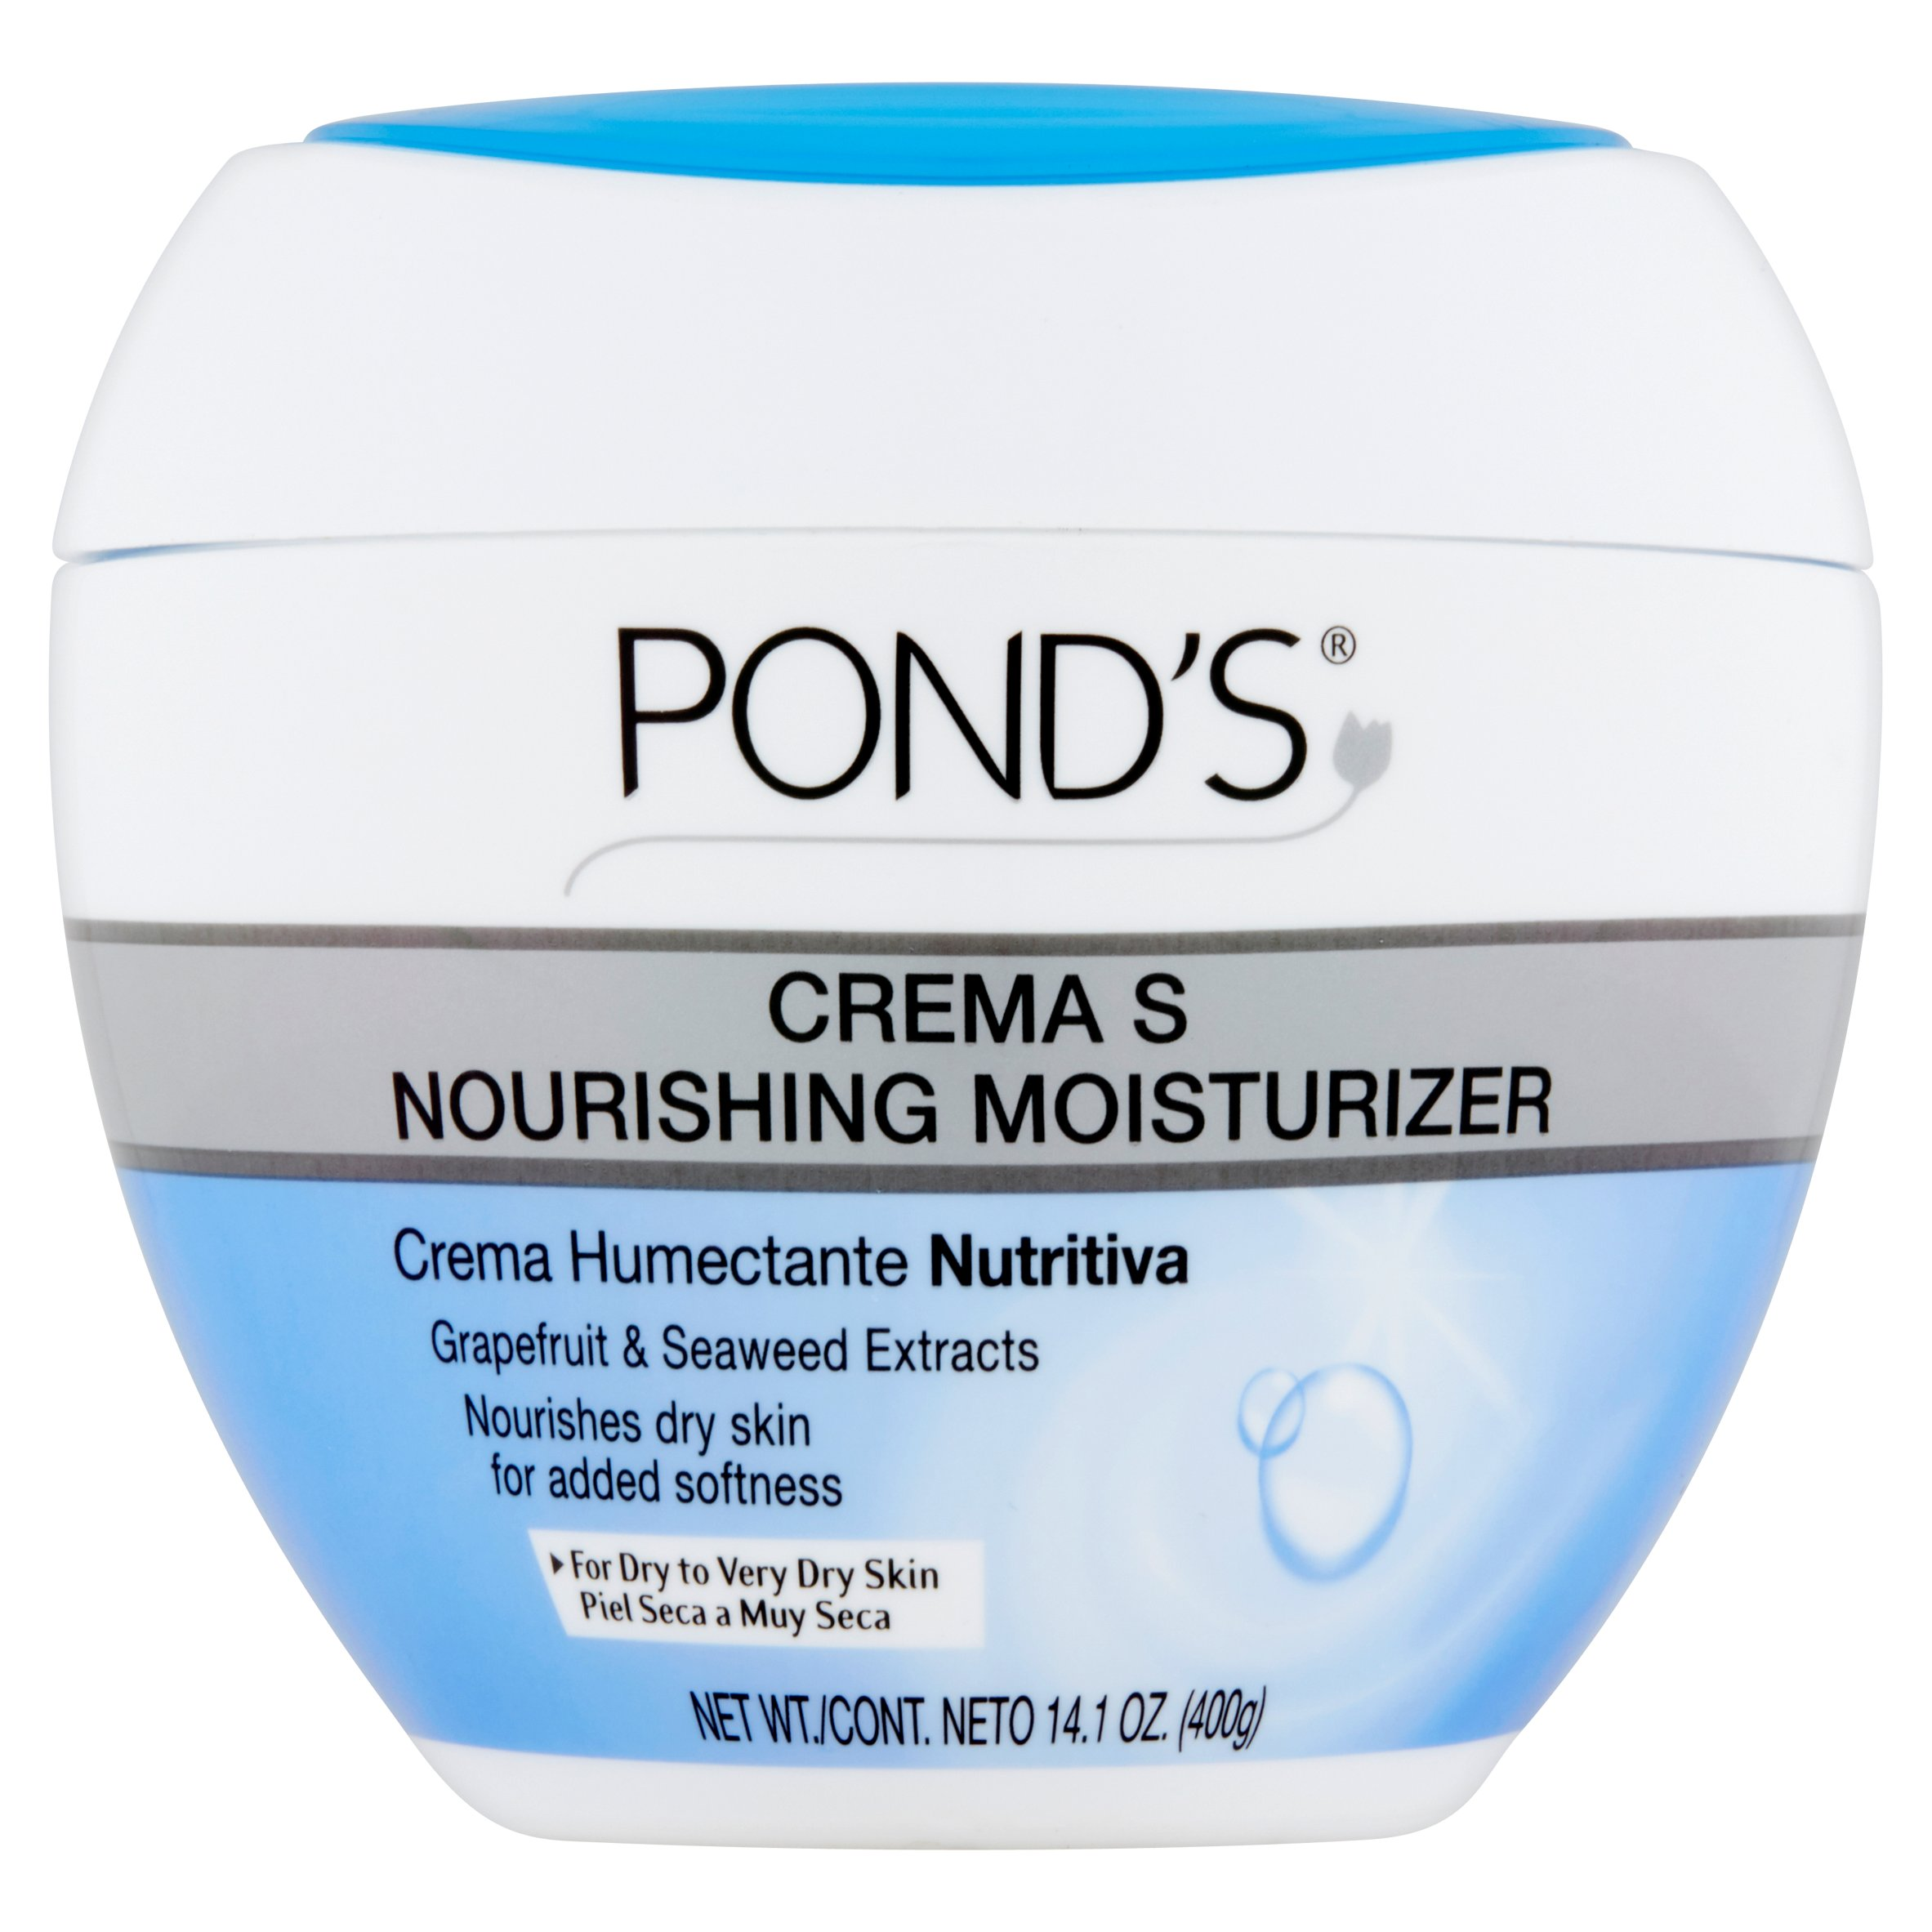 Pond's Crema S Nourishing Moisturizing Cream 14.1 oz